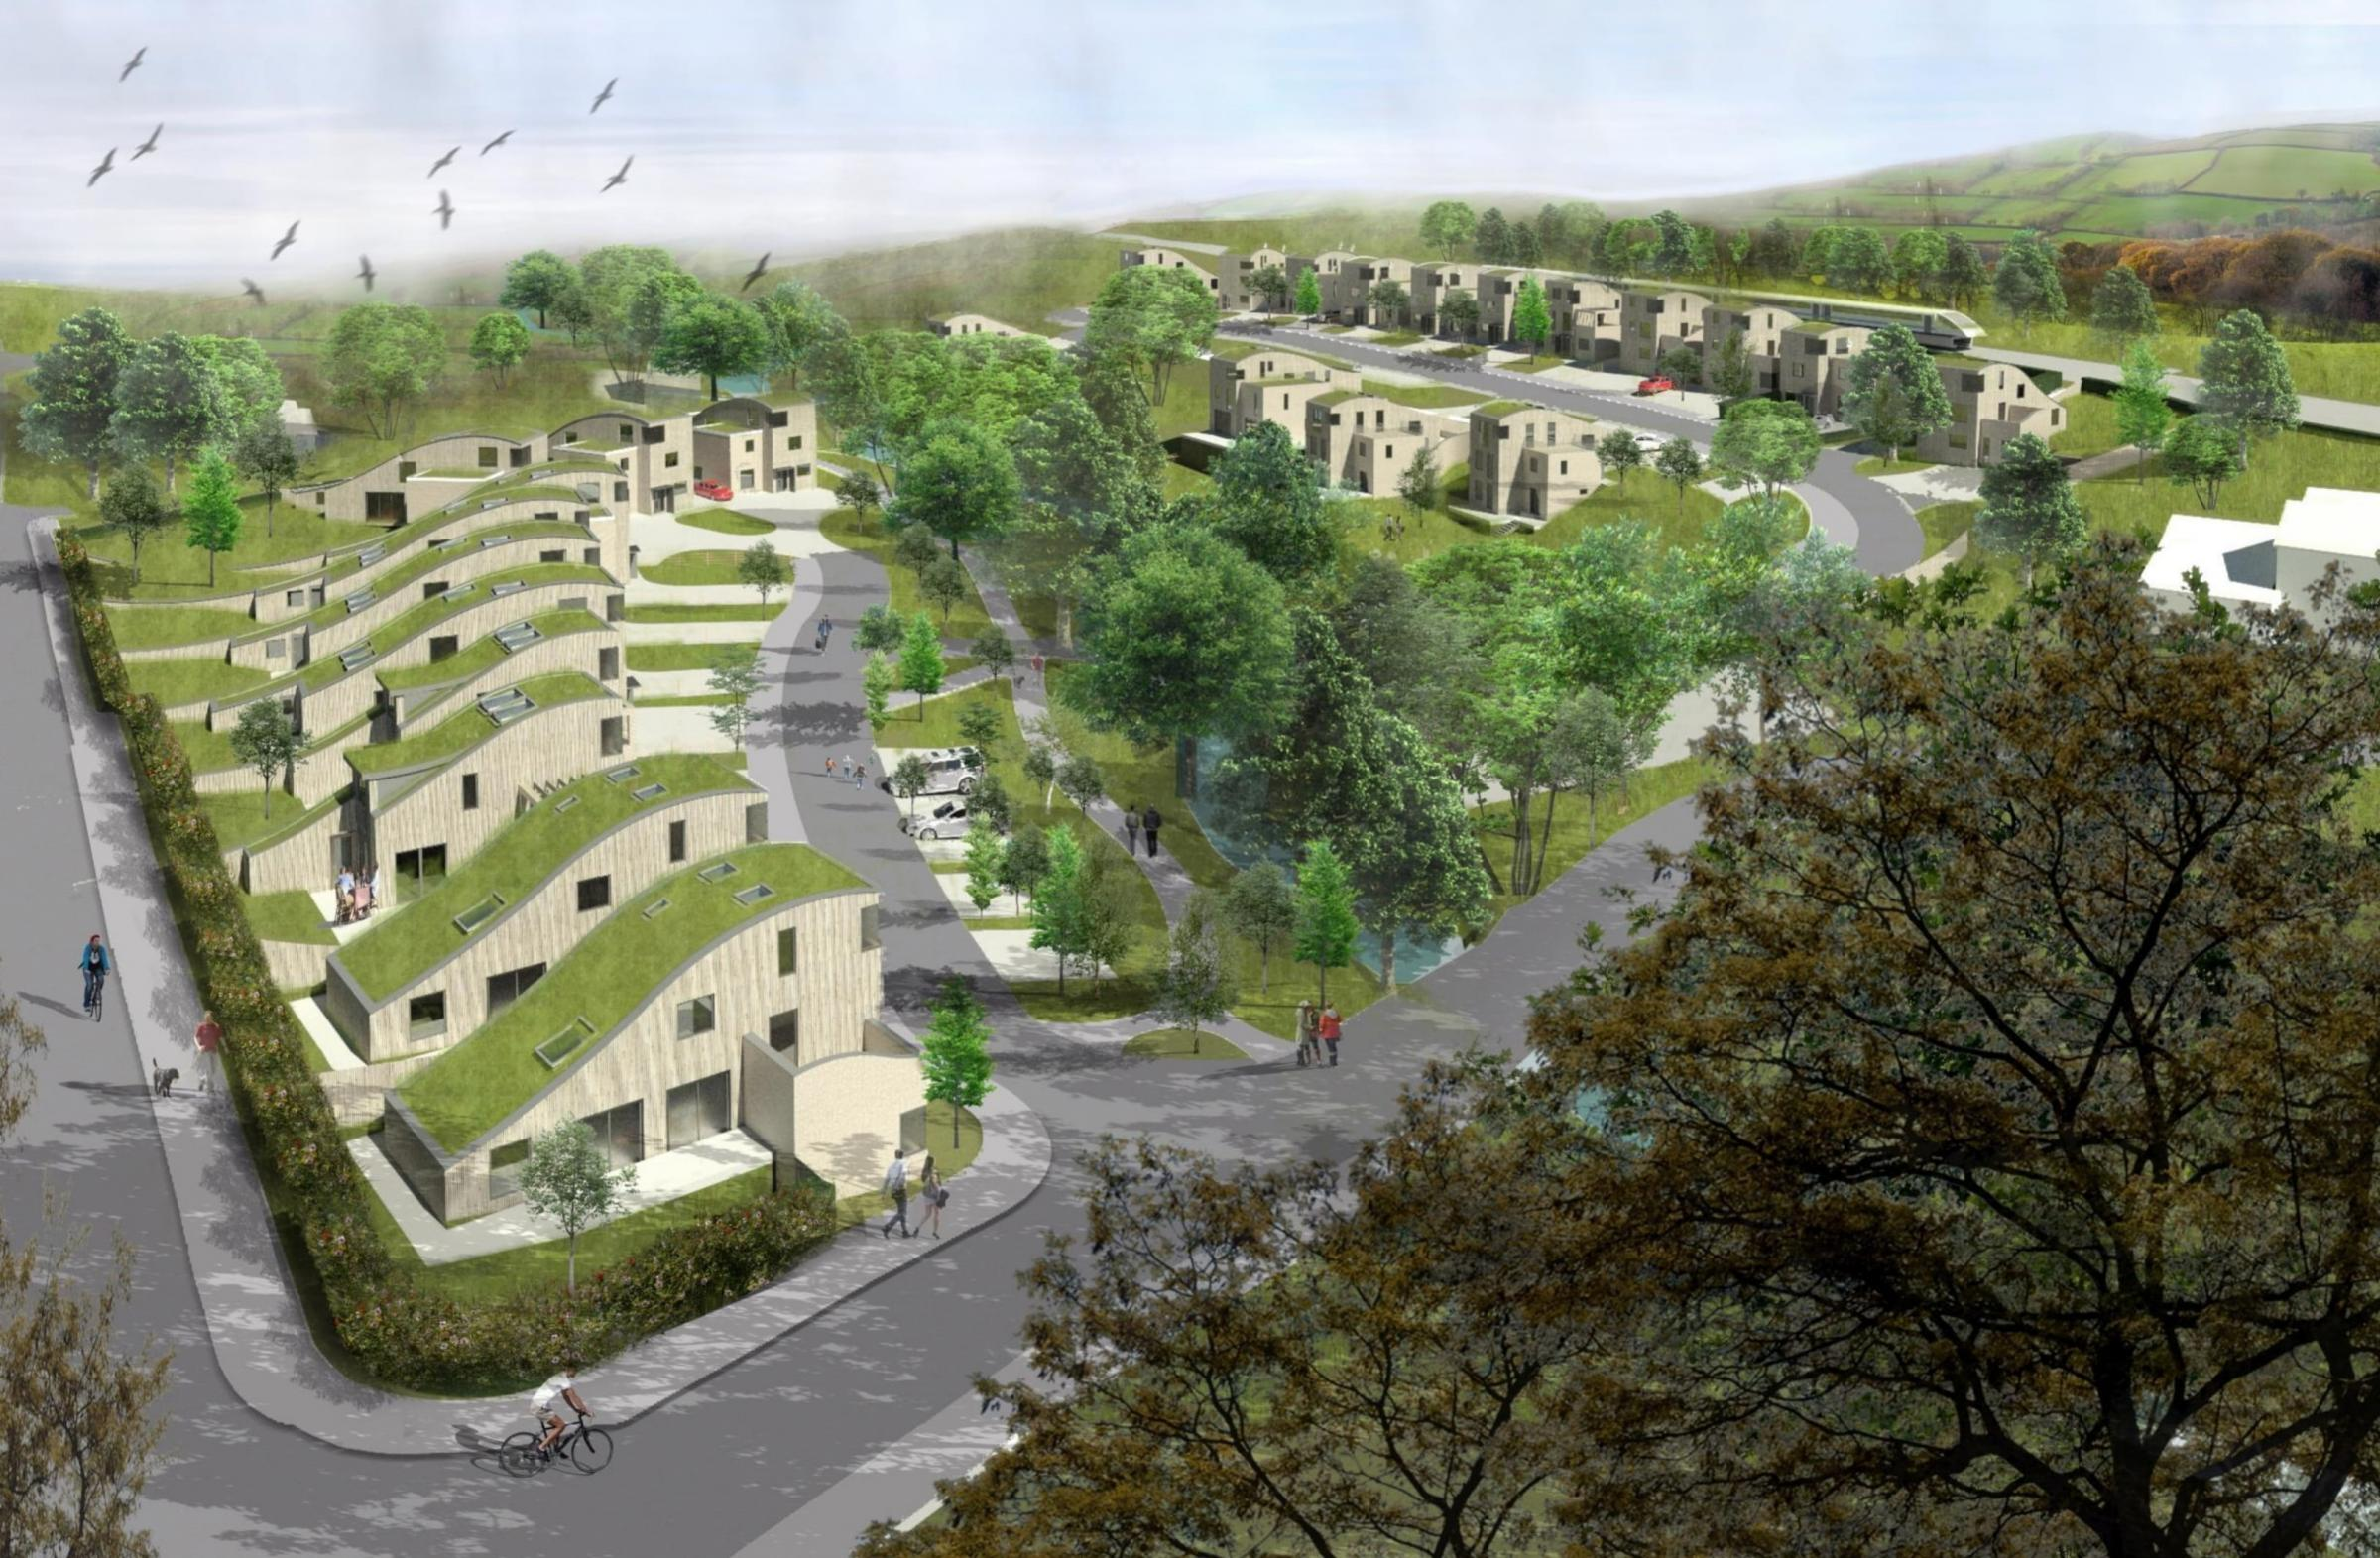 An image showing how the proposed eco homes could look